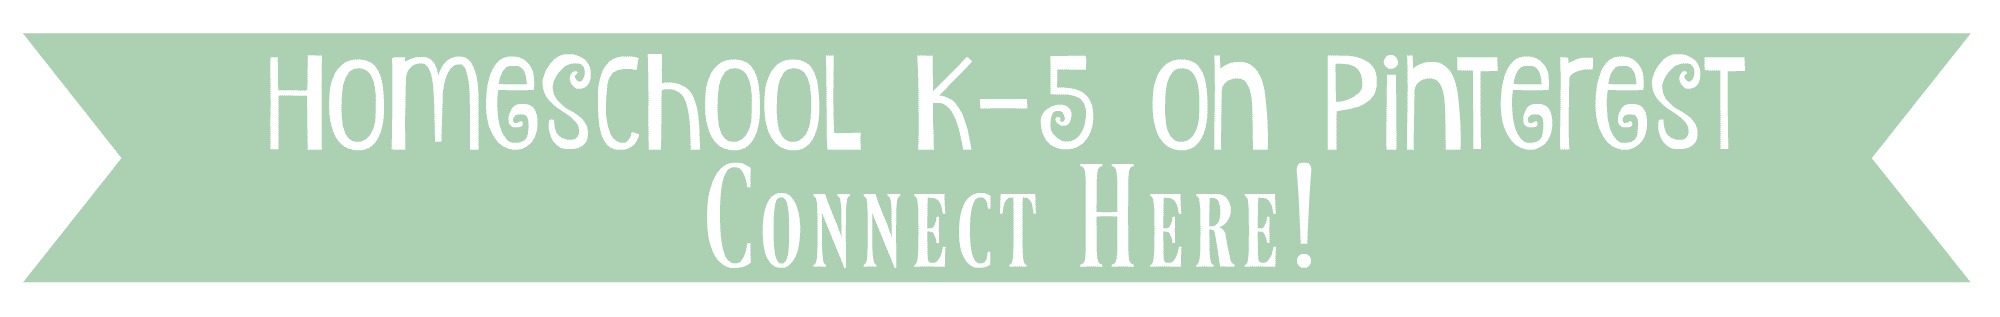 Homeschool K-5 on Pinterest Connect Here